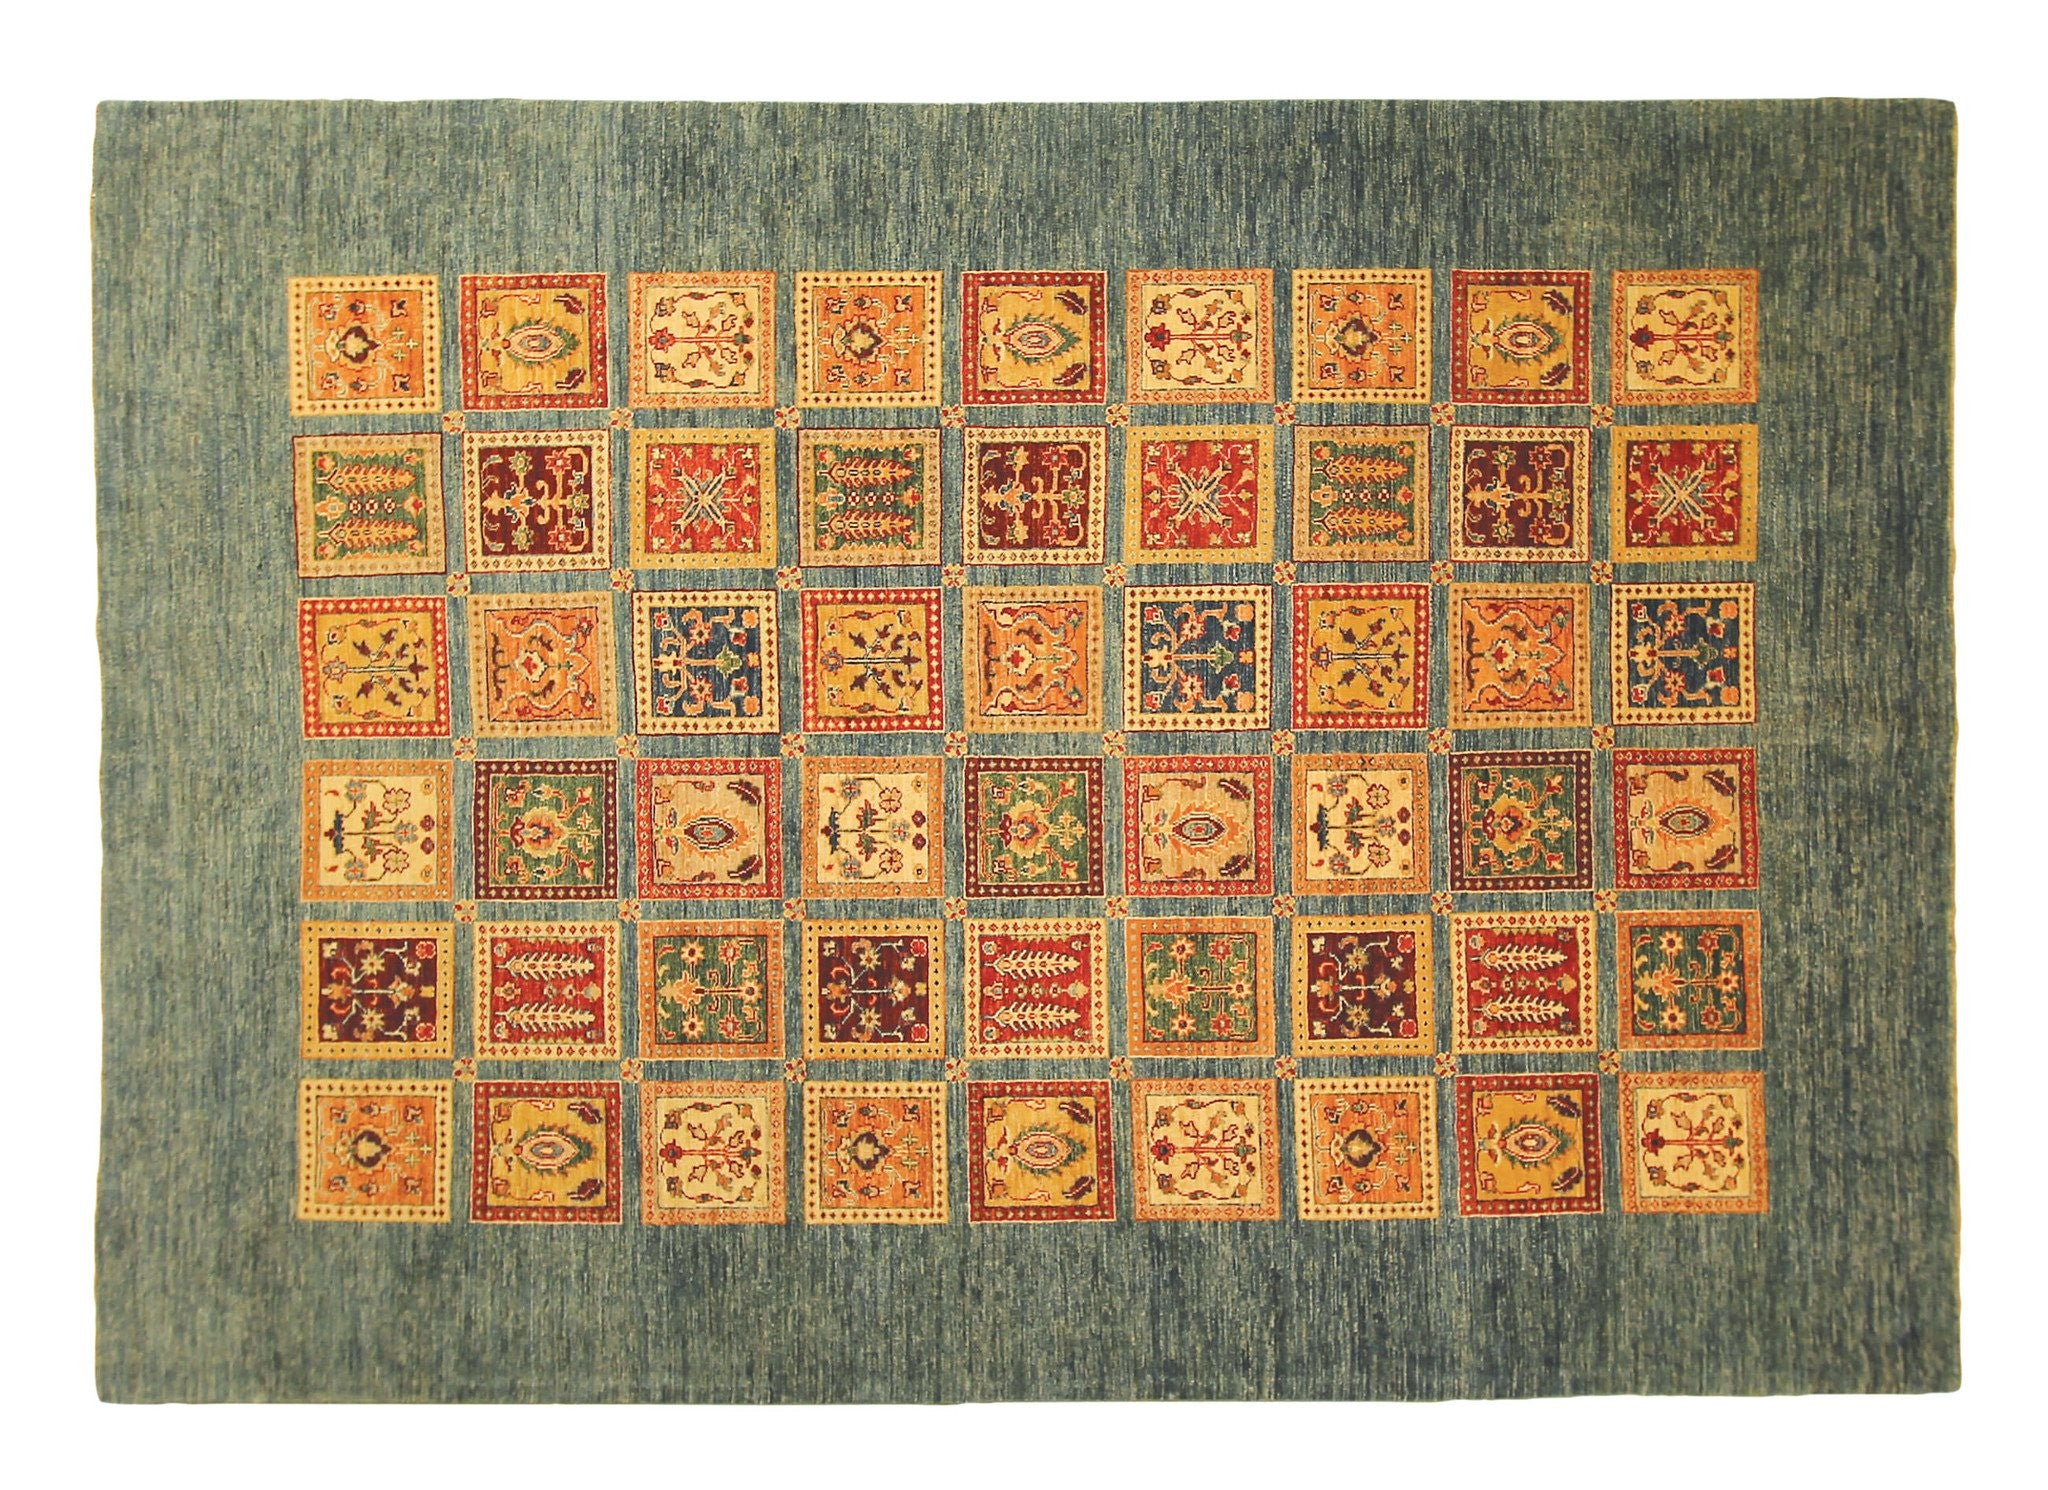 Farahan 300x200 from above